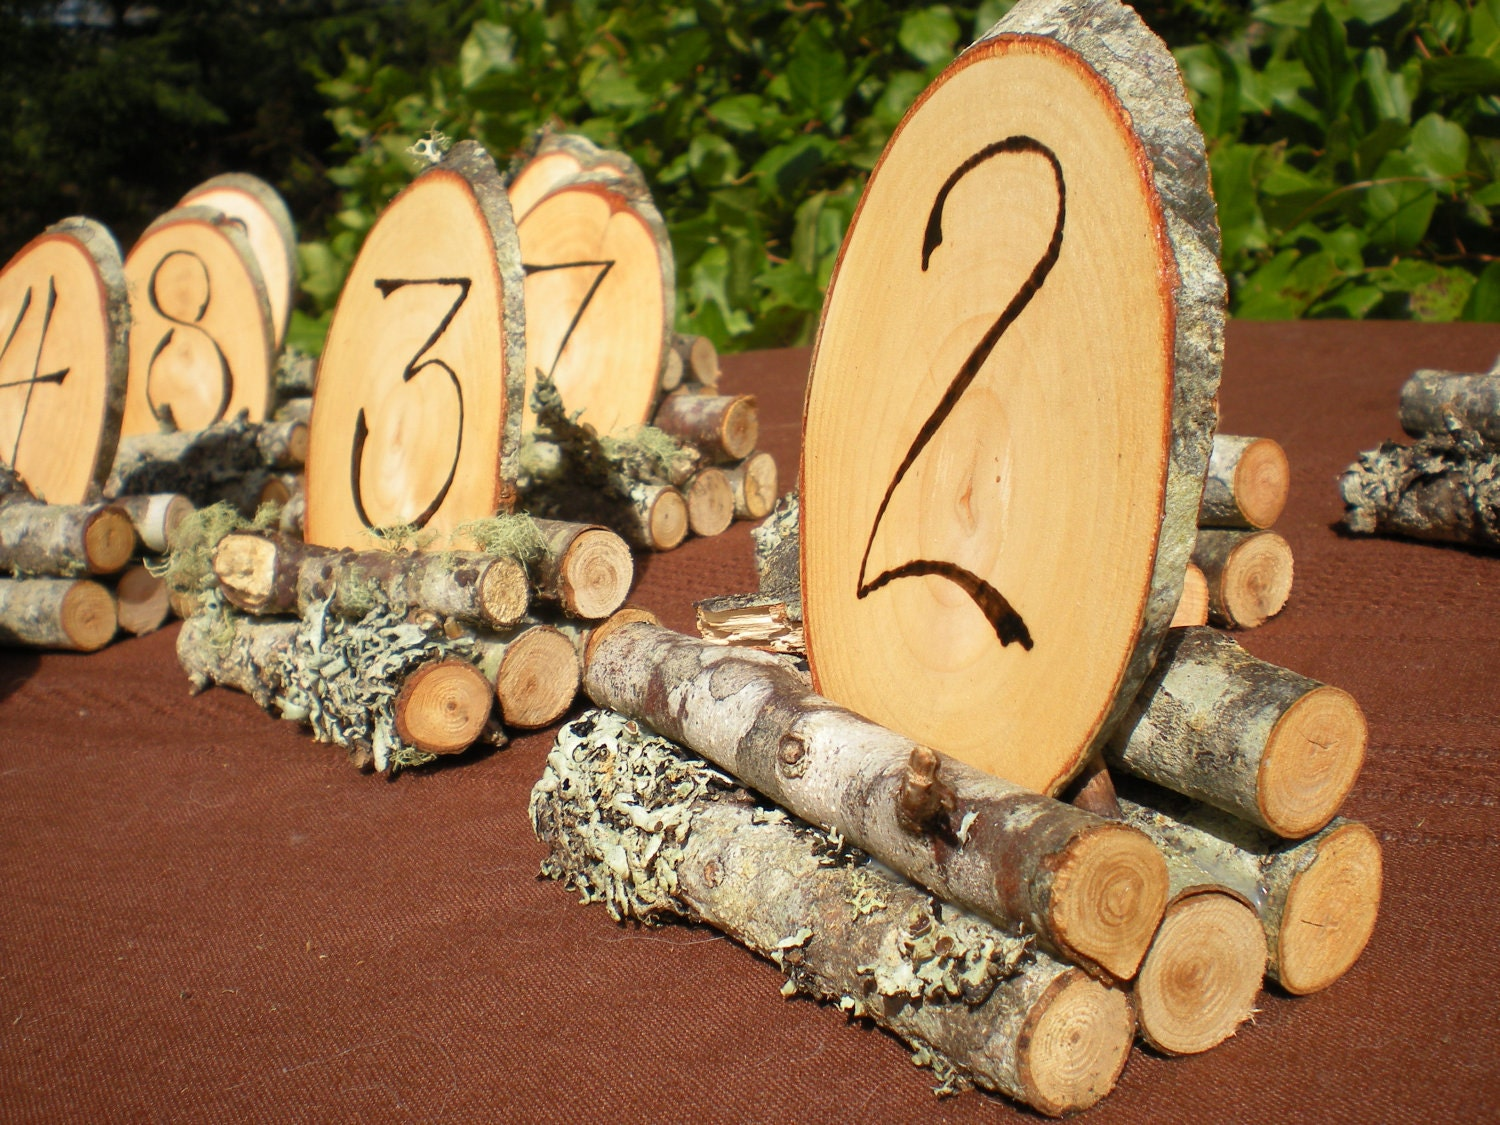 Superb img of Wood Wedding Table Numbers Rustic Wedding 1 8 by aTwistOfNature with #4B5F0B color and 1500x1125 pixels